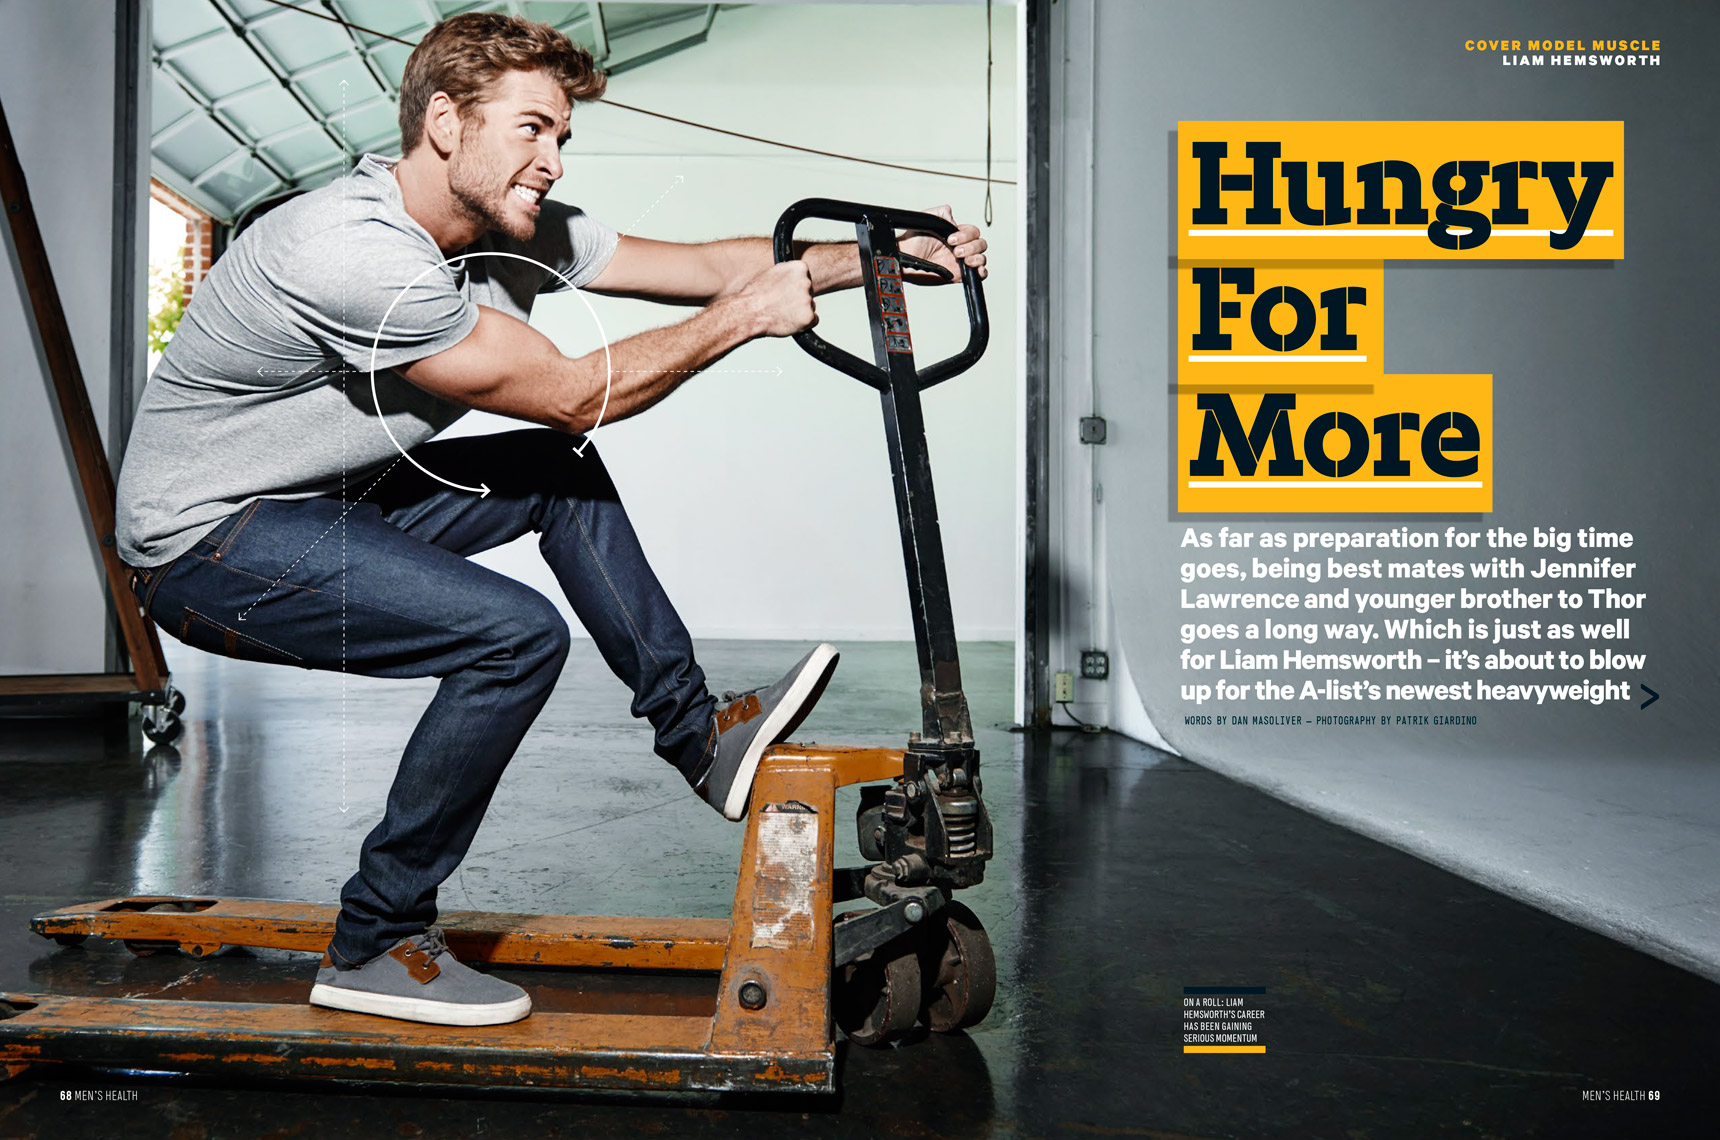 68-COVER-MODEL-MUSCLE-Liam-Hemsworth-(PDF-Spread)-1